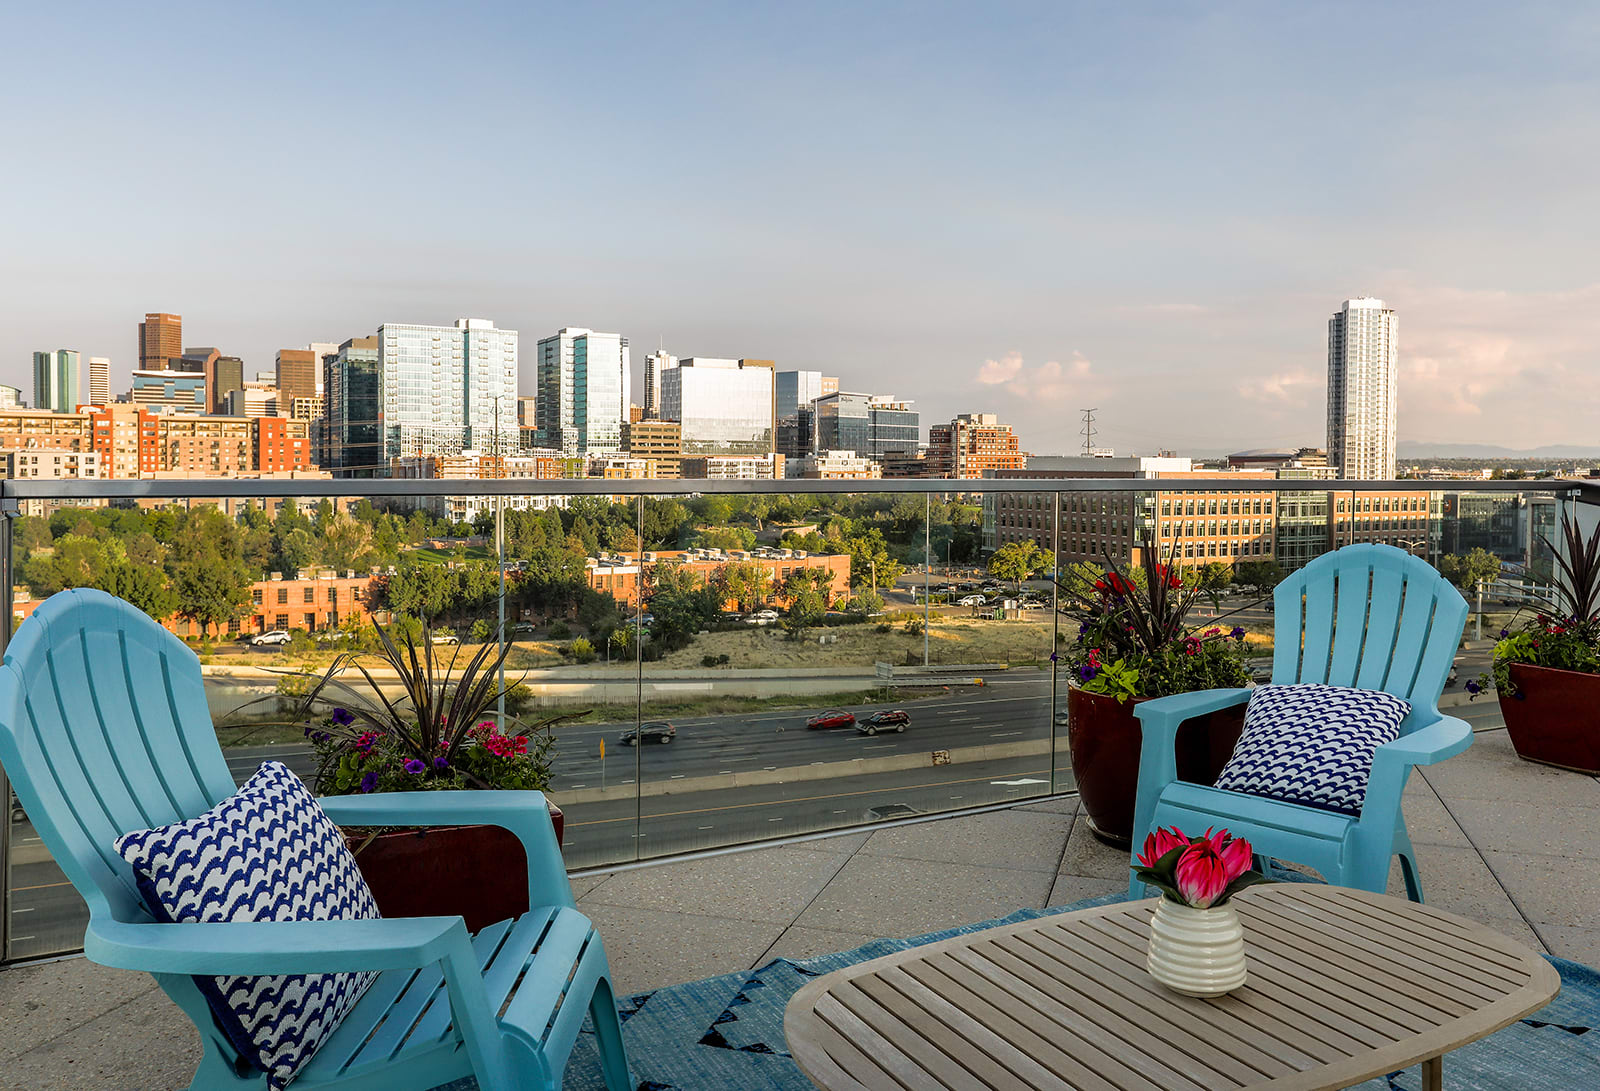 Stunning Views Of The Denver Skyline From Our Location at Centric LoHi by Windsor, Denver, CO